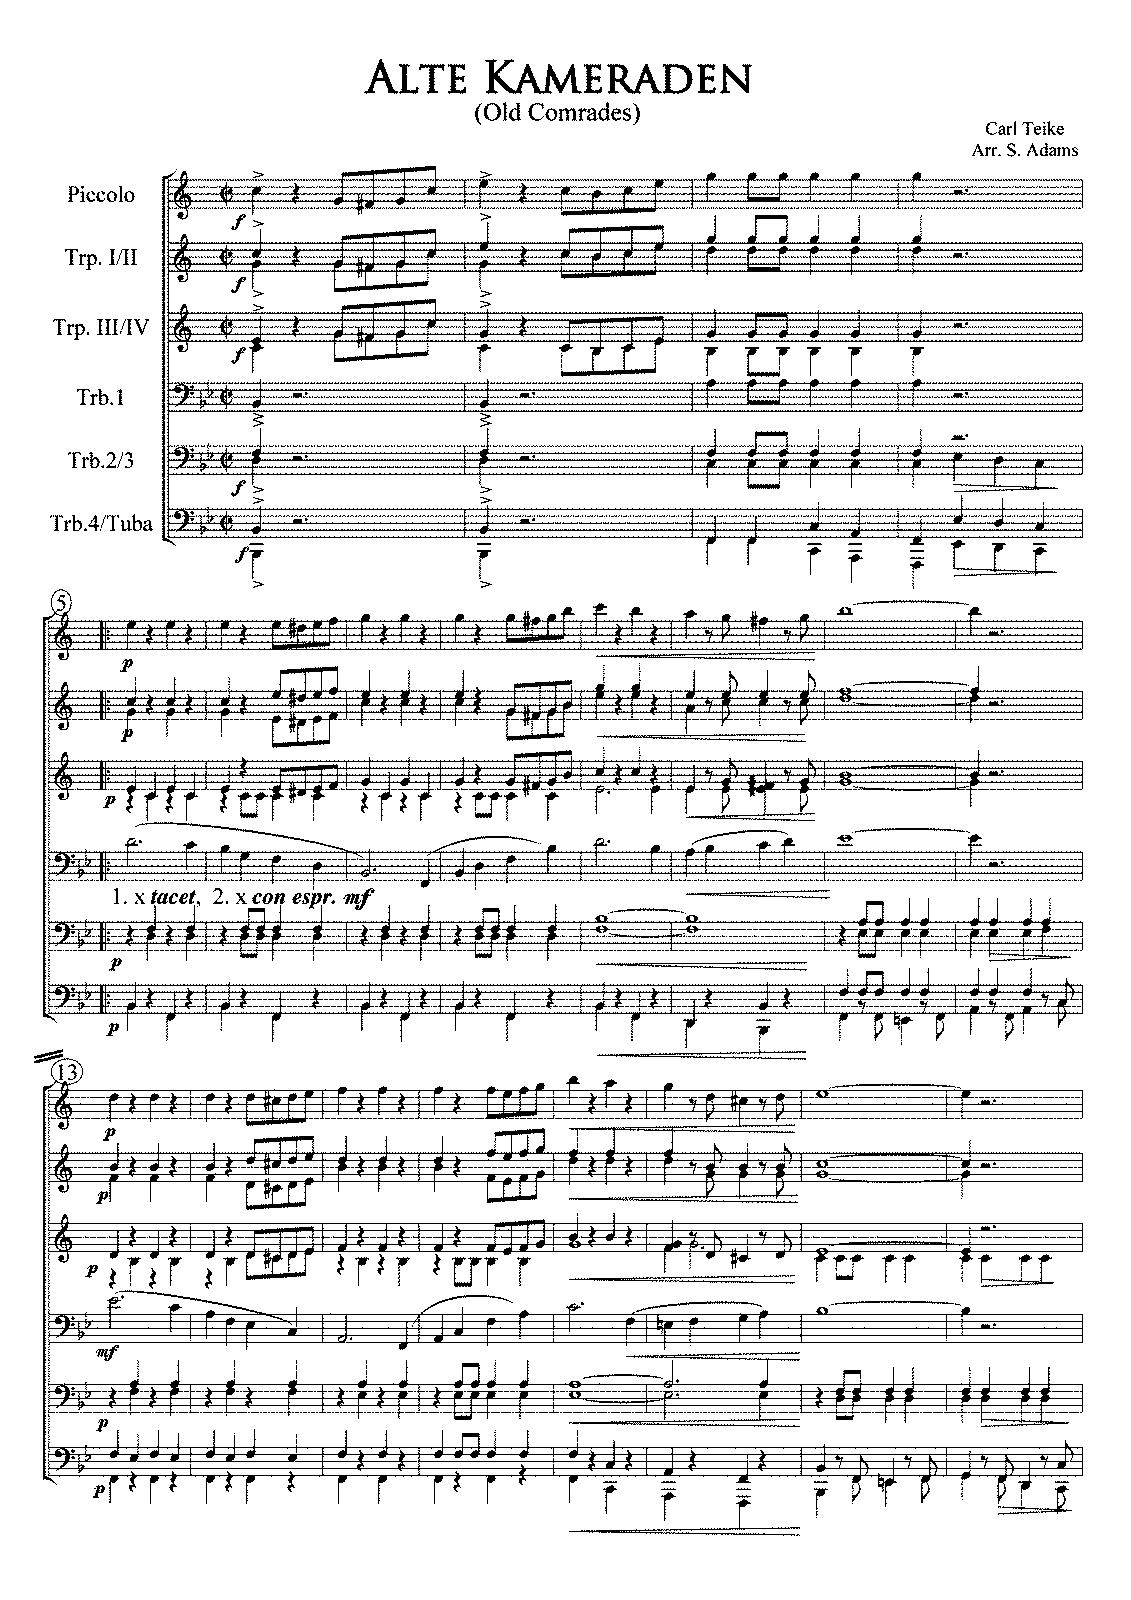 PMLP81969-Teike Alte Kameraden Full Score and Parts (Trp in Bb).pdf